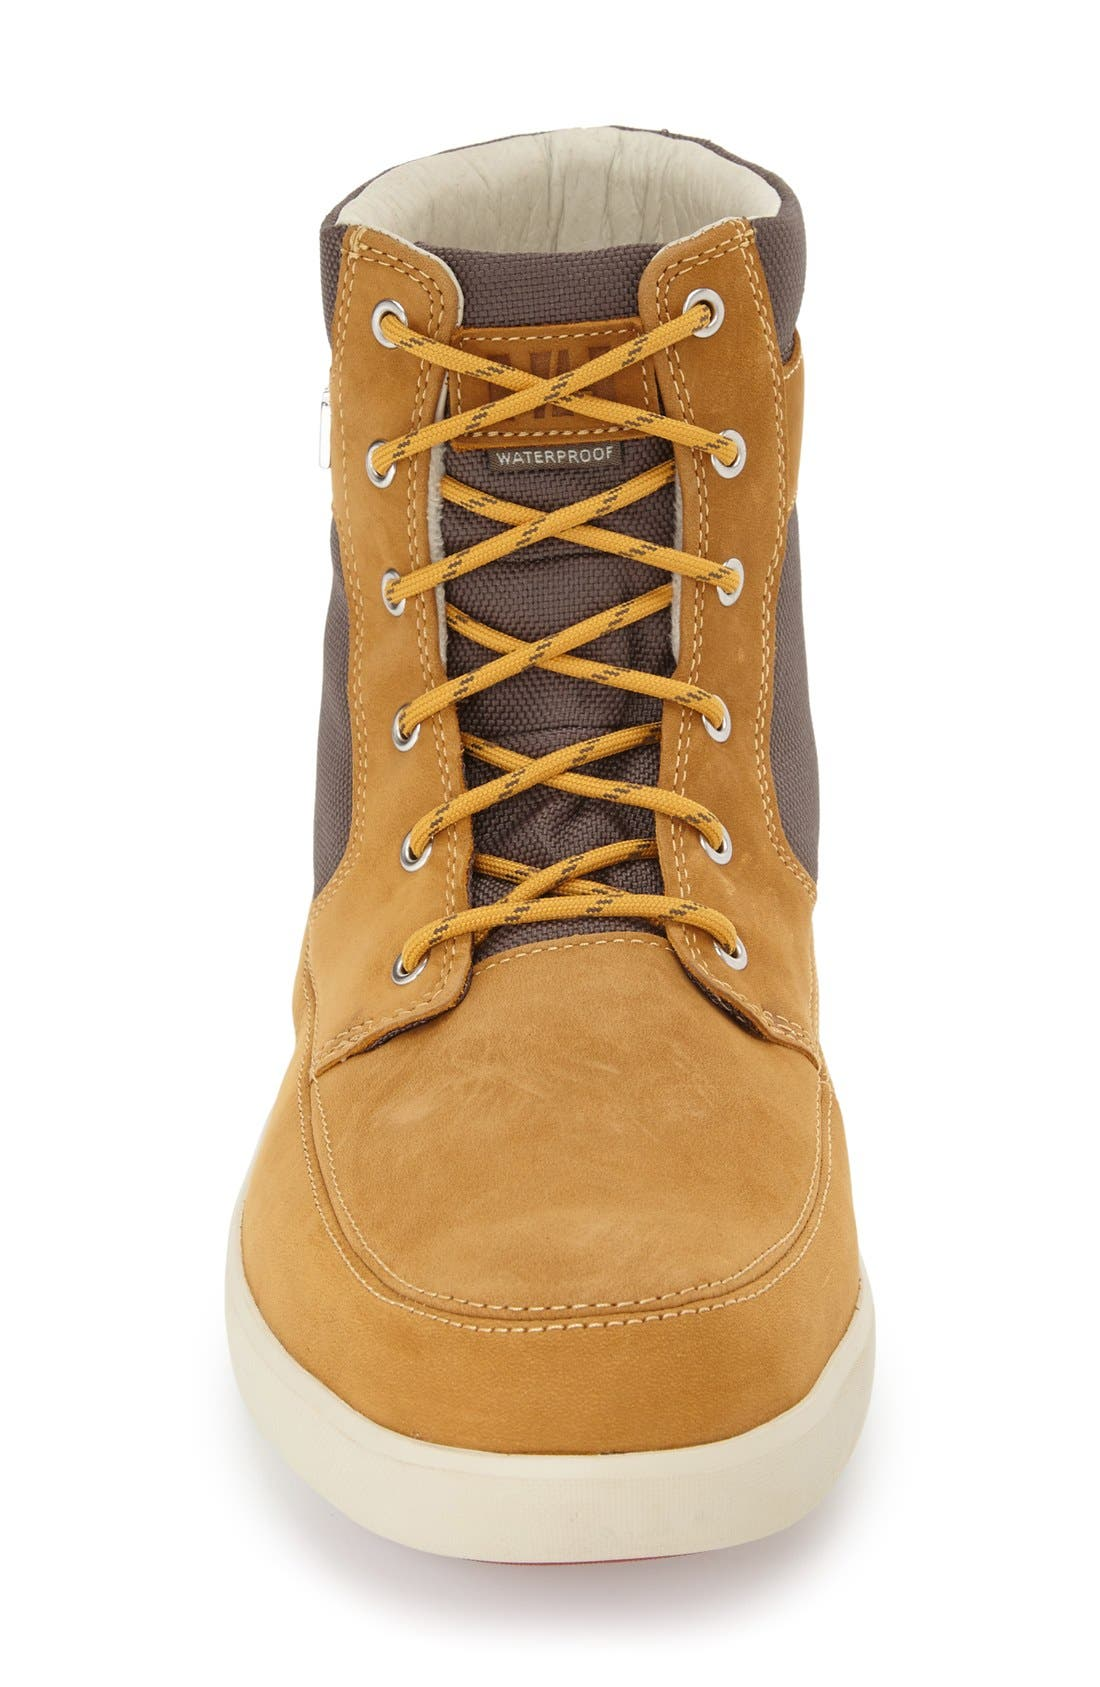 'Stockholm' Waterproof High Top Sneaker,                             Alternate thumbnail 3, color,                             New Wheat